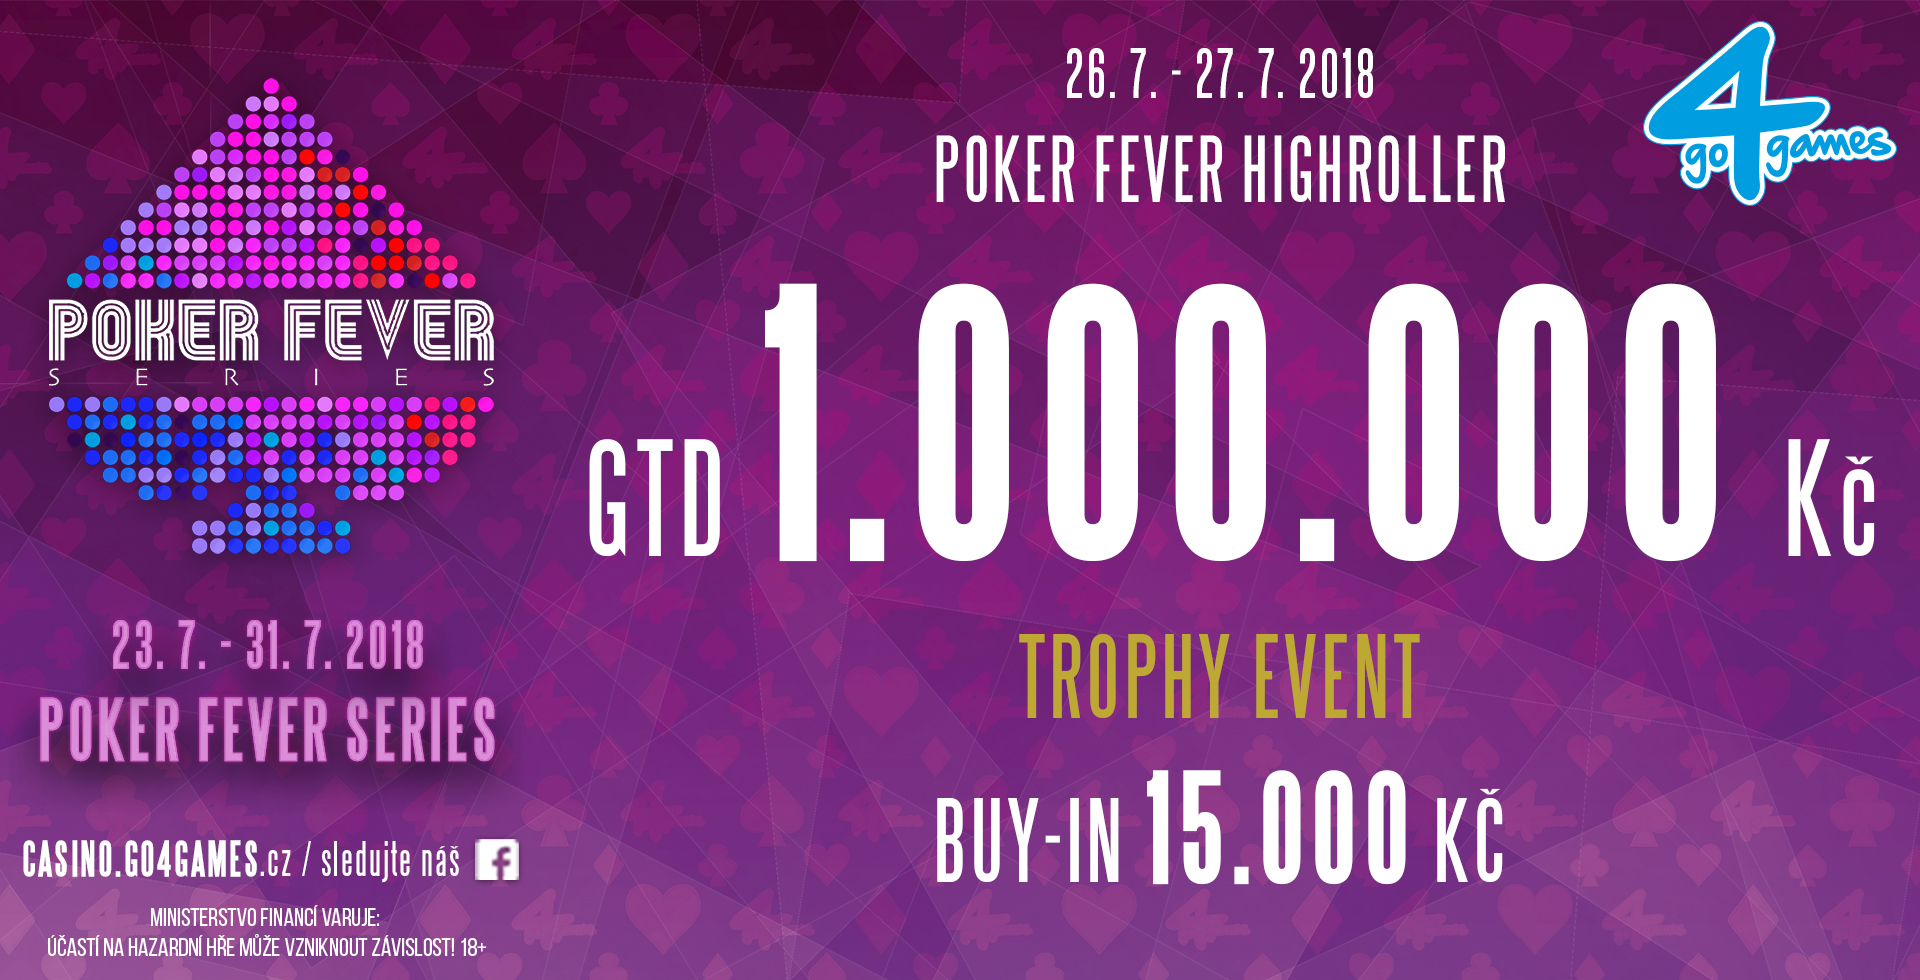 1920x980_Poker fever series HIGHROLLER